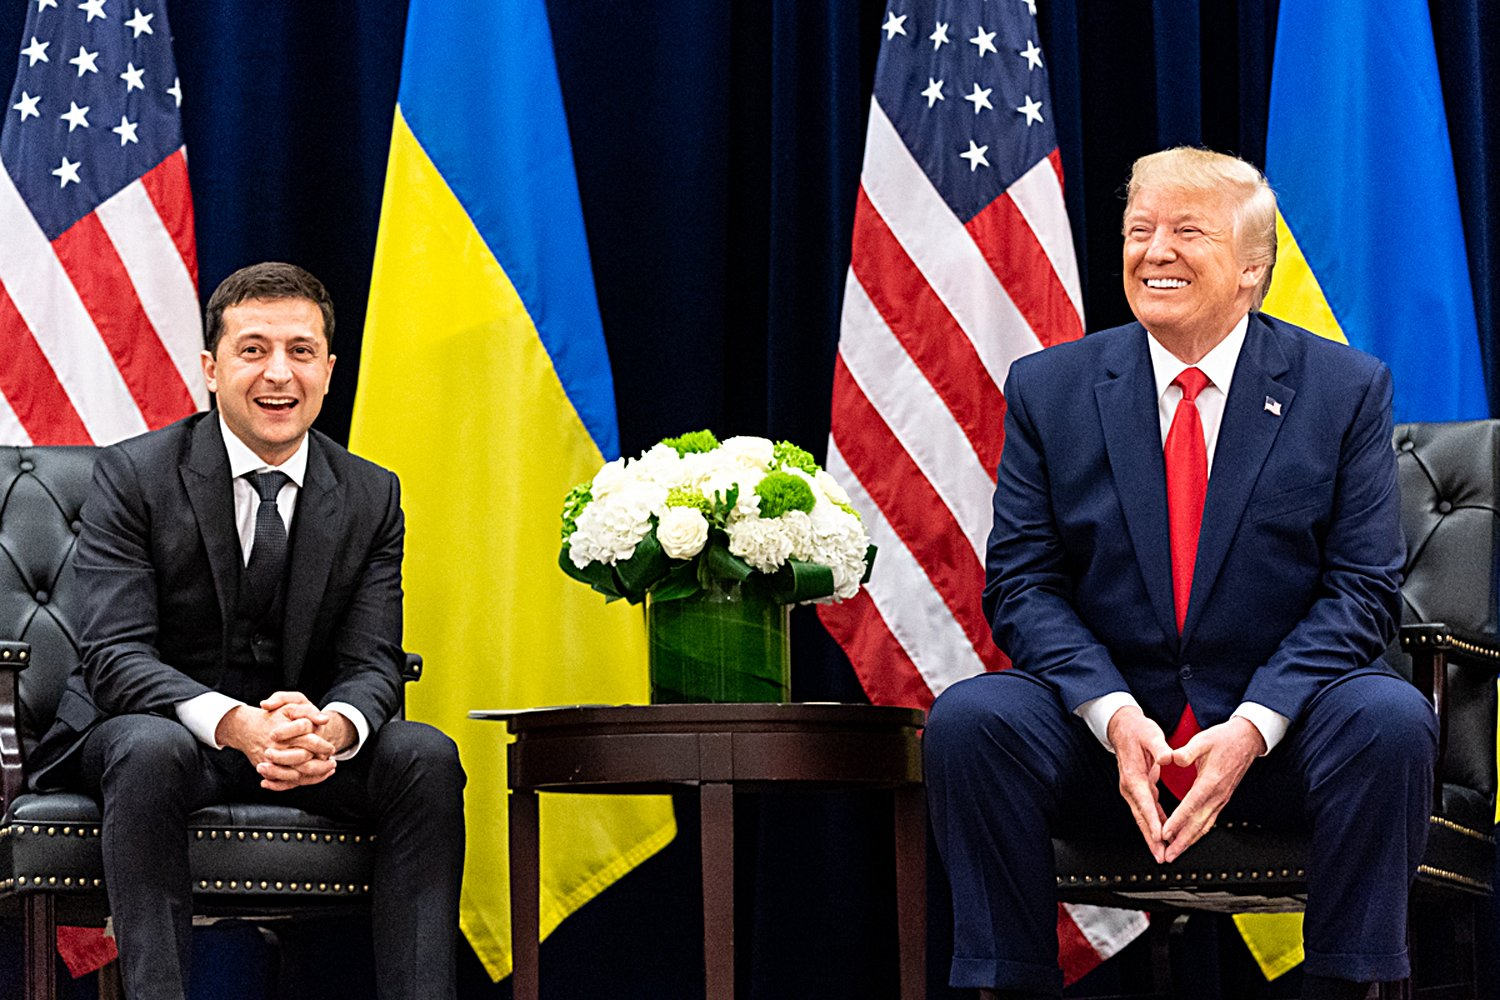 impeachment - telefonata - trump - zelensky